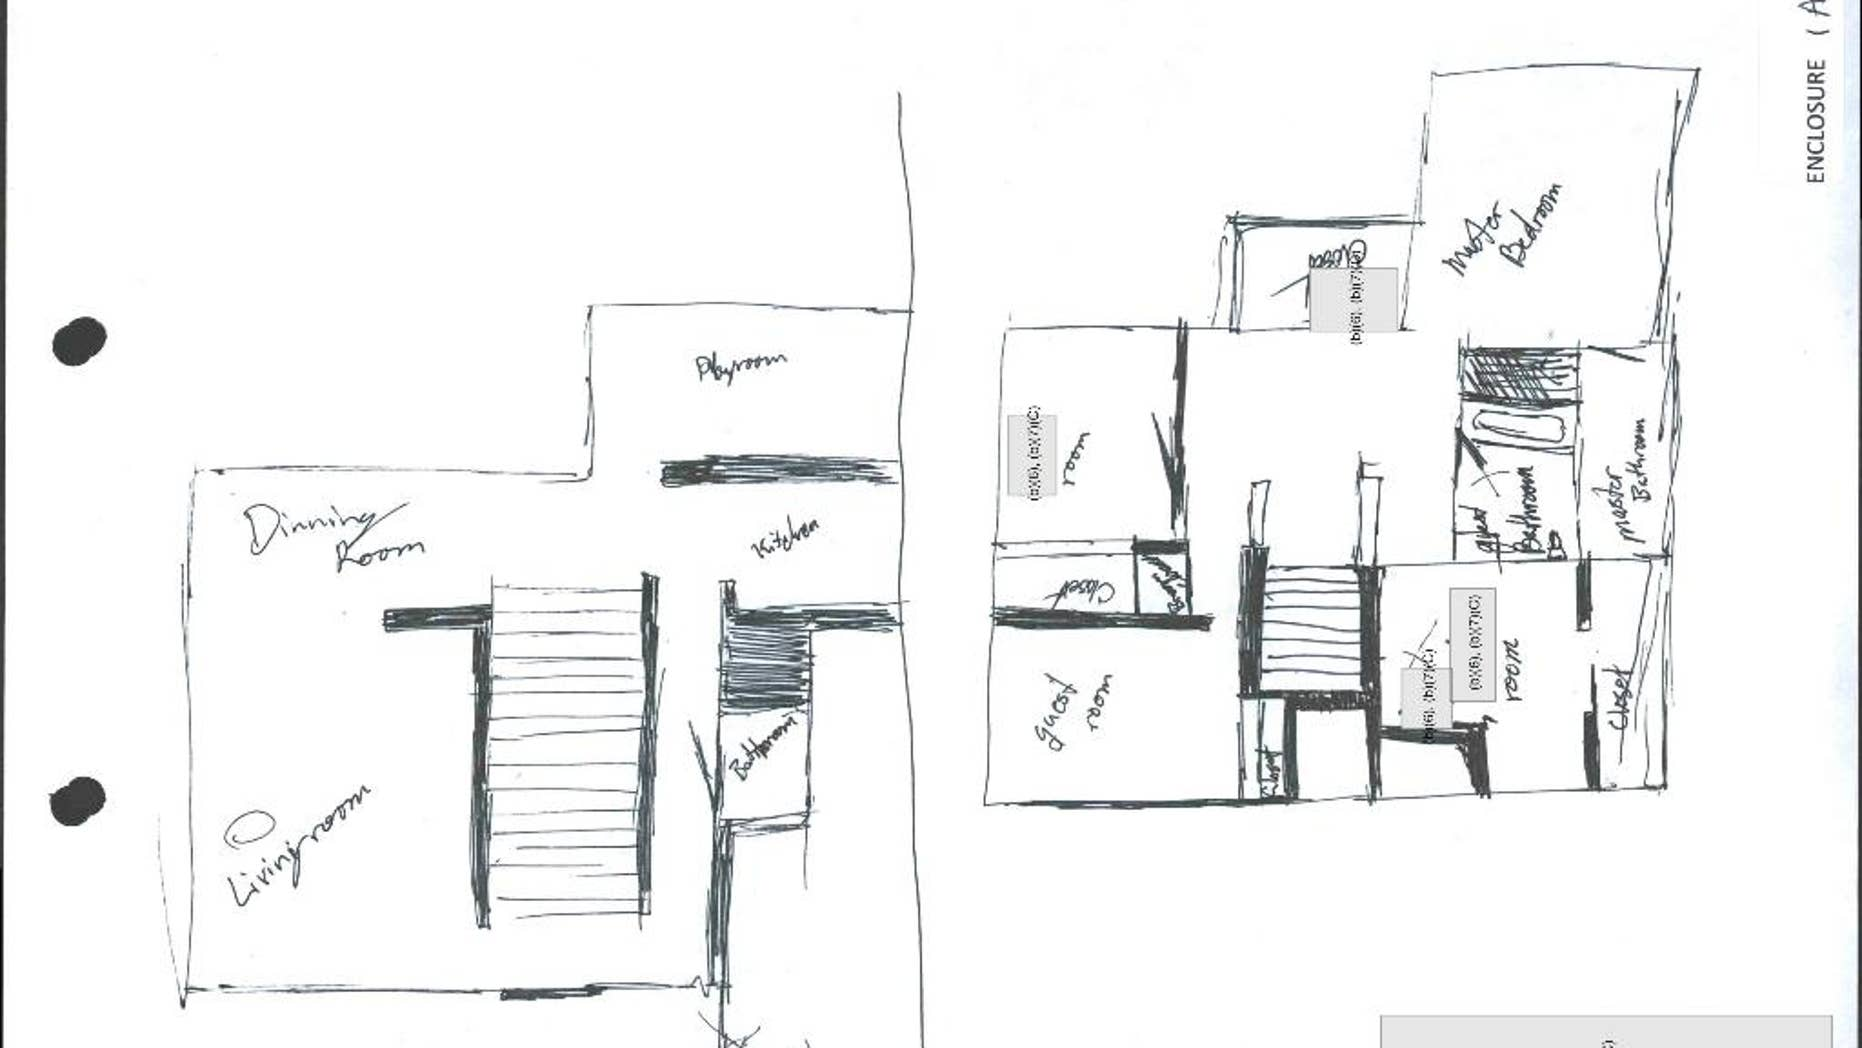 This diagram taken from U.S. Naval Criminal Investigative Service report, is of a drawing by Cpl. Aaron C. Masa during his interrogation showing the floor plan of the home, using X's and O's to show where the abuse occurred. A military judge convicted Masa of sexual abuse of a child and production of child pornography, according to court records and other documents detailing the case. Under the terms of a pretrial agreement, he agreed to plead guilty and received 30 years in prison. (U.S. Naval Criminal Investigative Service via AP)